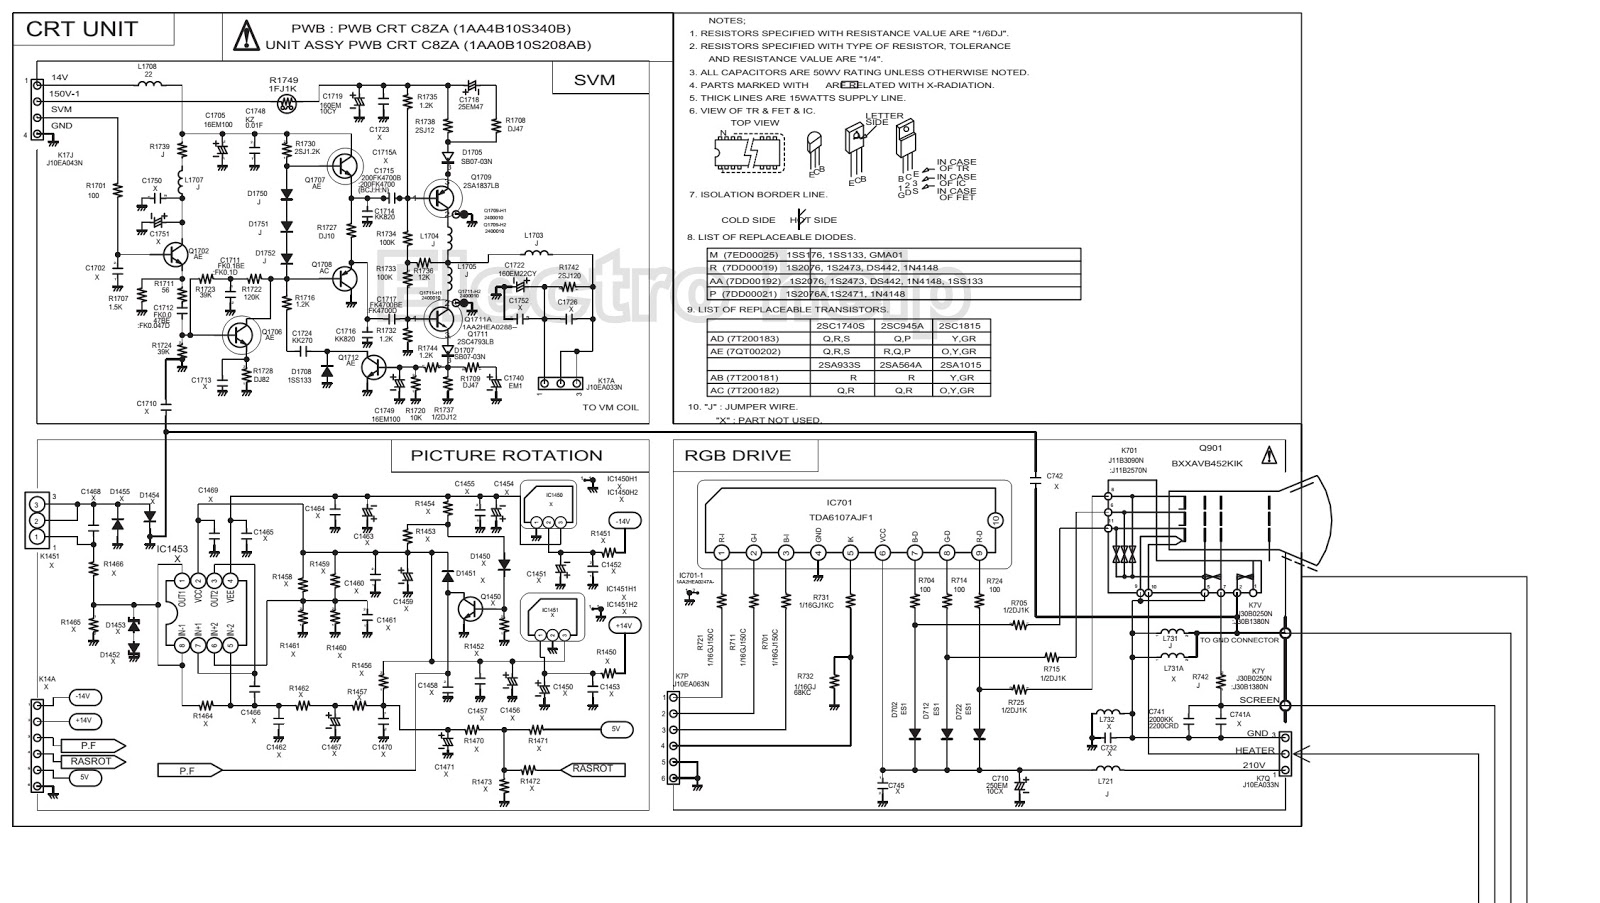 Sanyo Tv 46840 Wiring Diagram - Ford Focus Fuel Filter Replacement | Bege Wiring  Diagram | Sanyo Tv 46840 Wiring Diagram |  | Bege Place Wiring Diagram - Bege Wiring Diagram